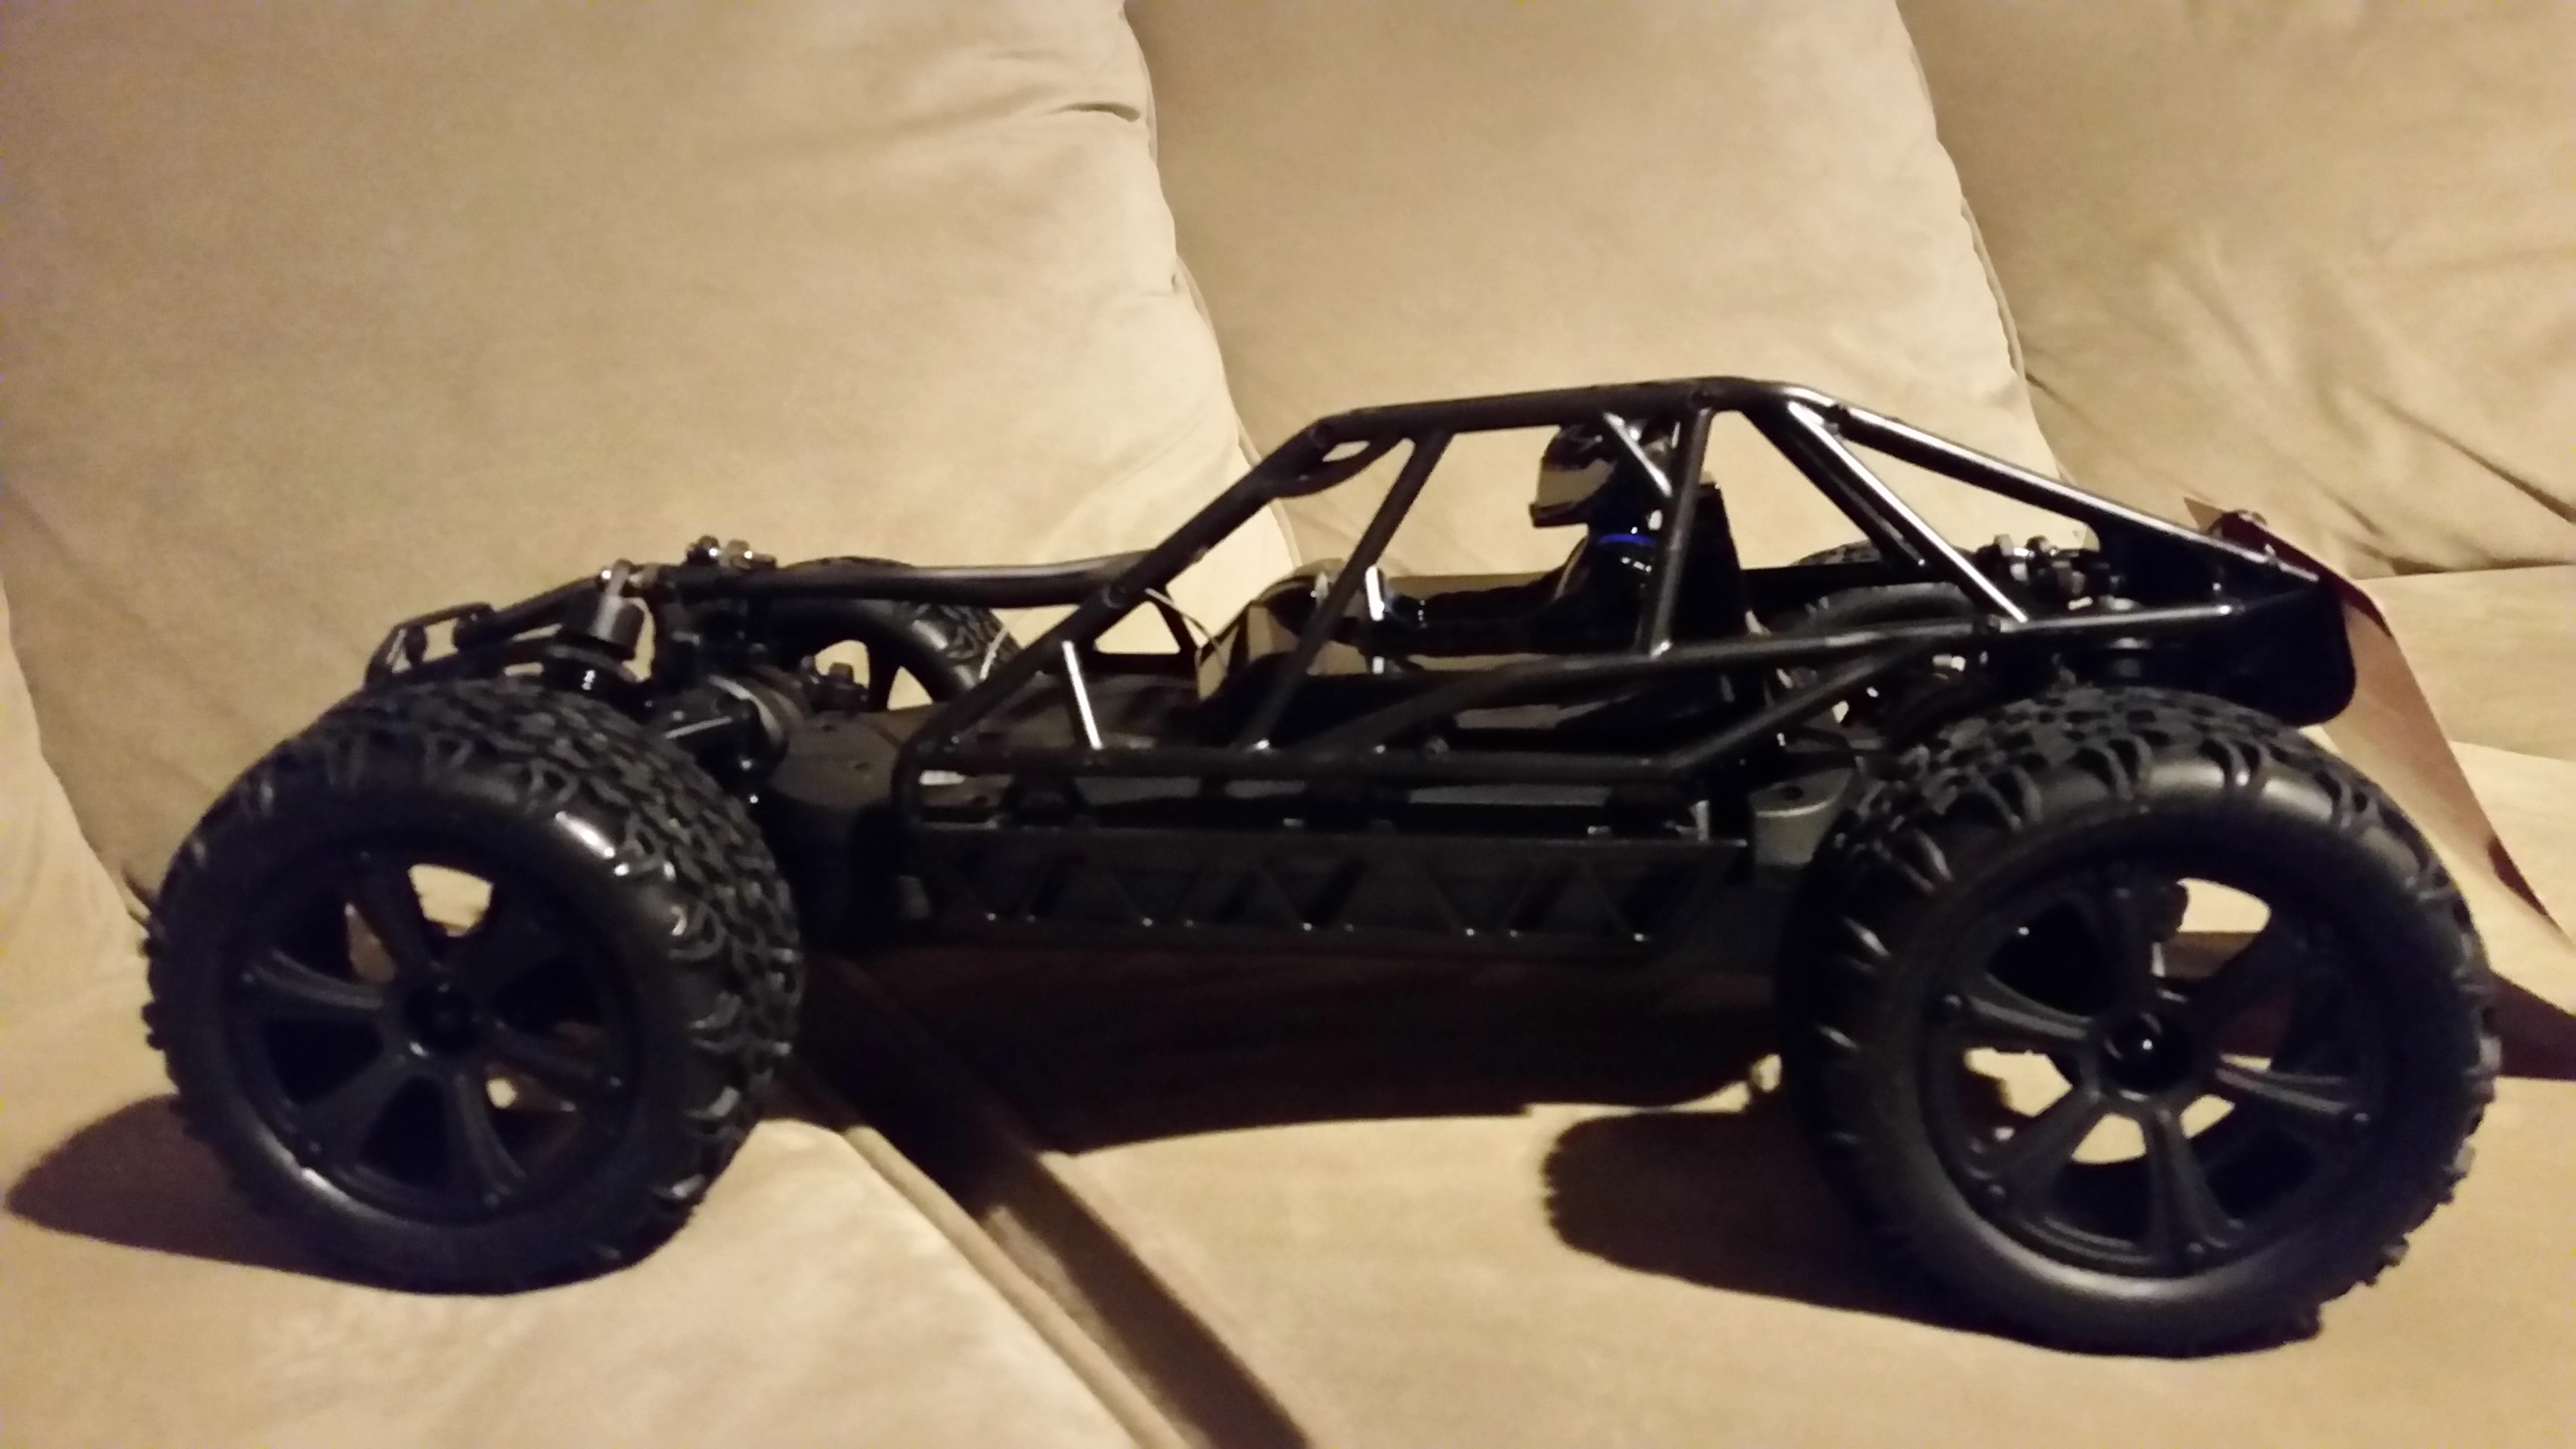 Traxxas Slash Motor Upgrade Official Traxxas Jato 3 3 On